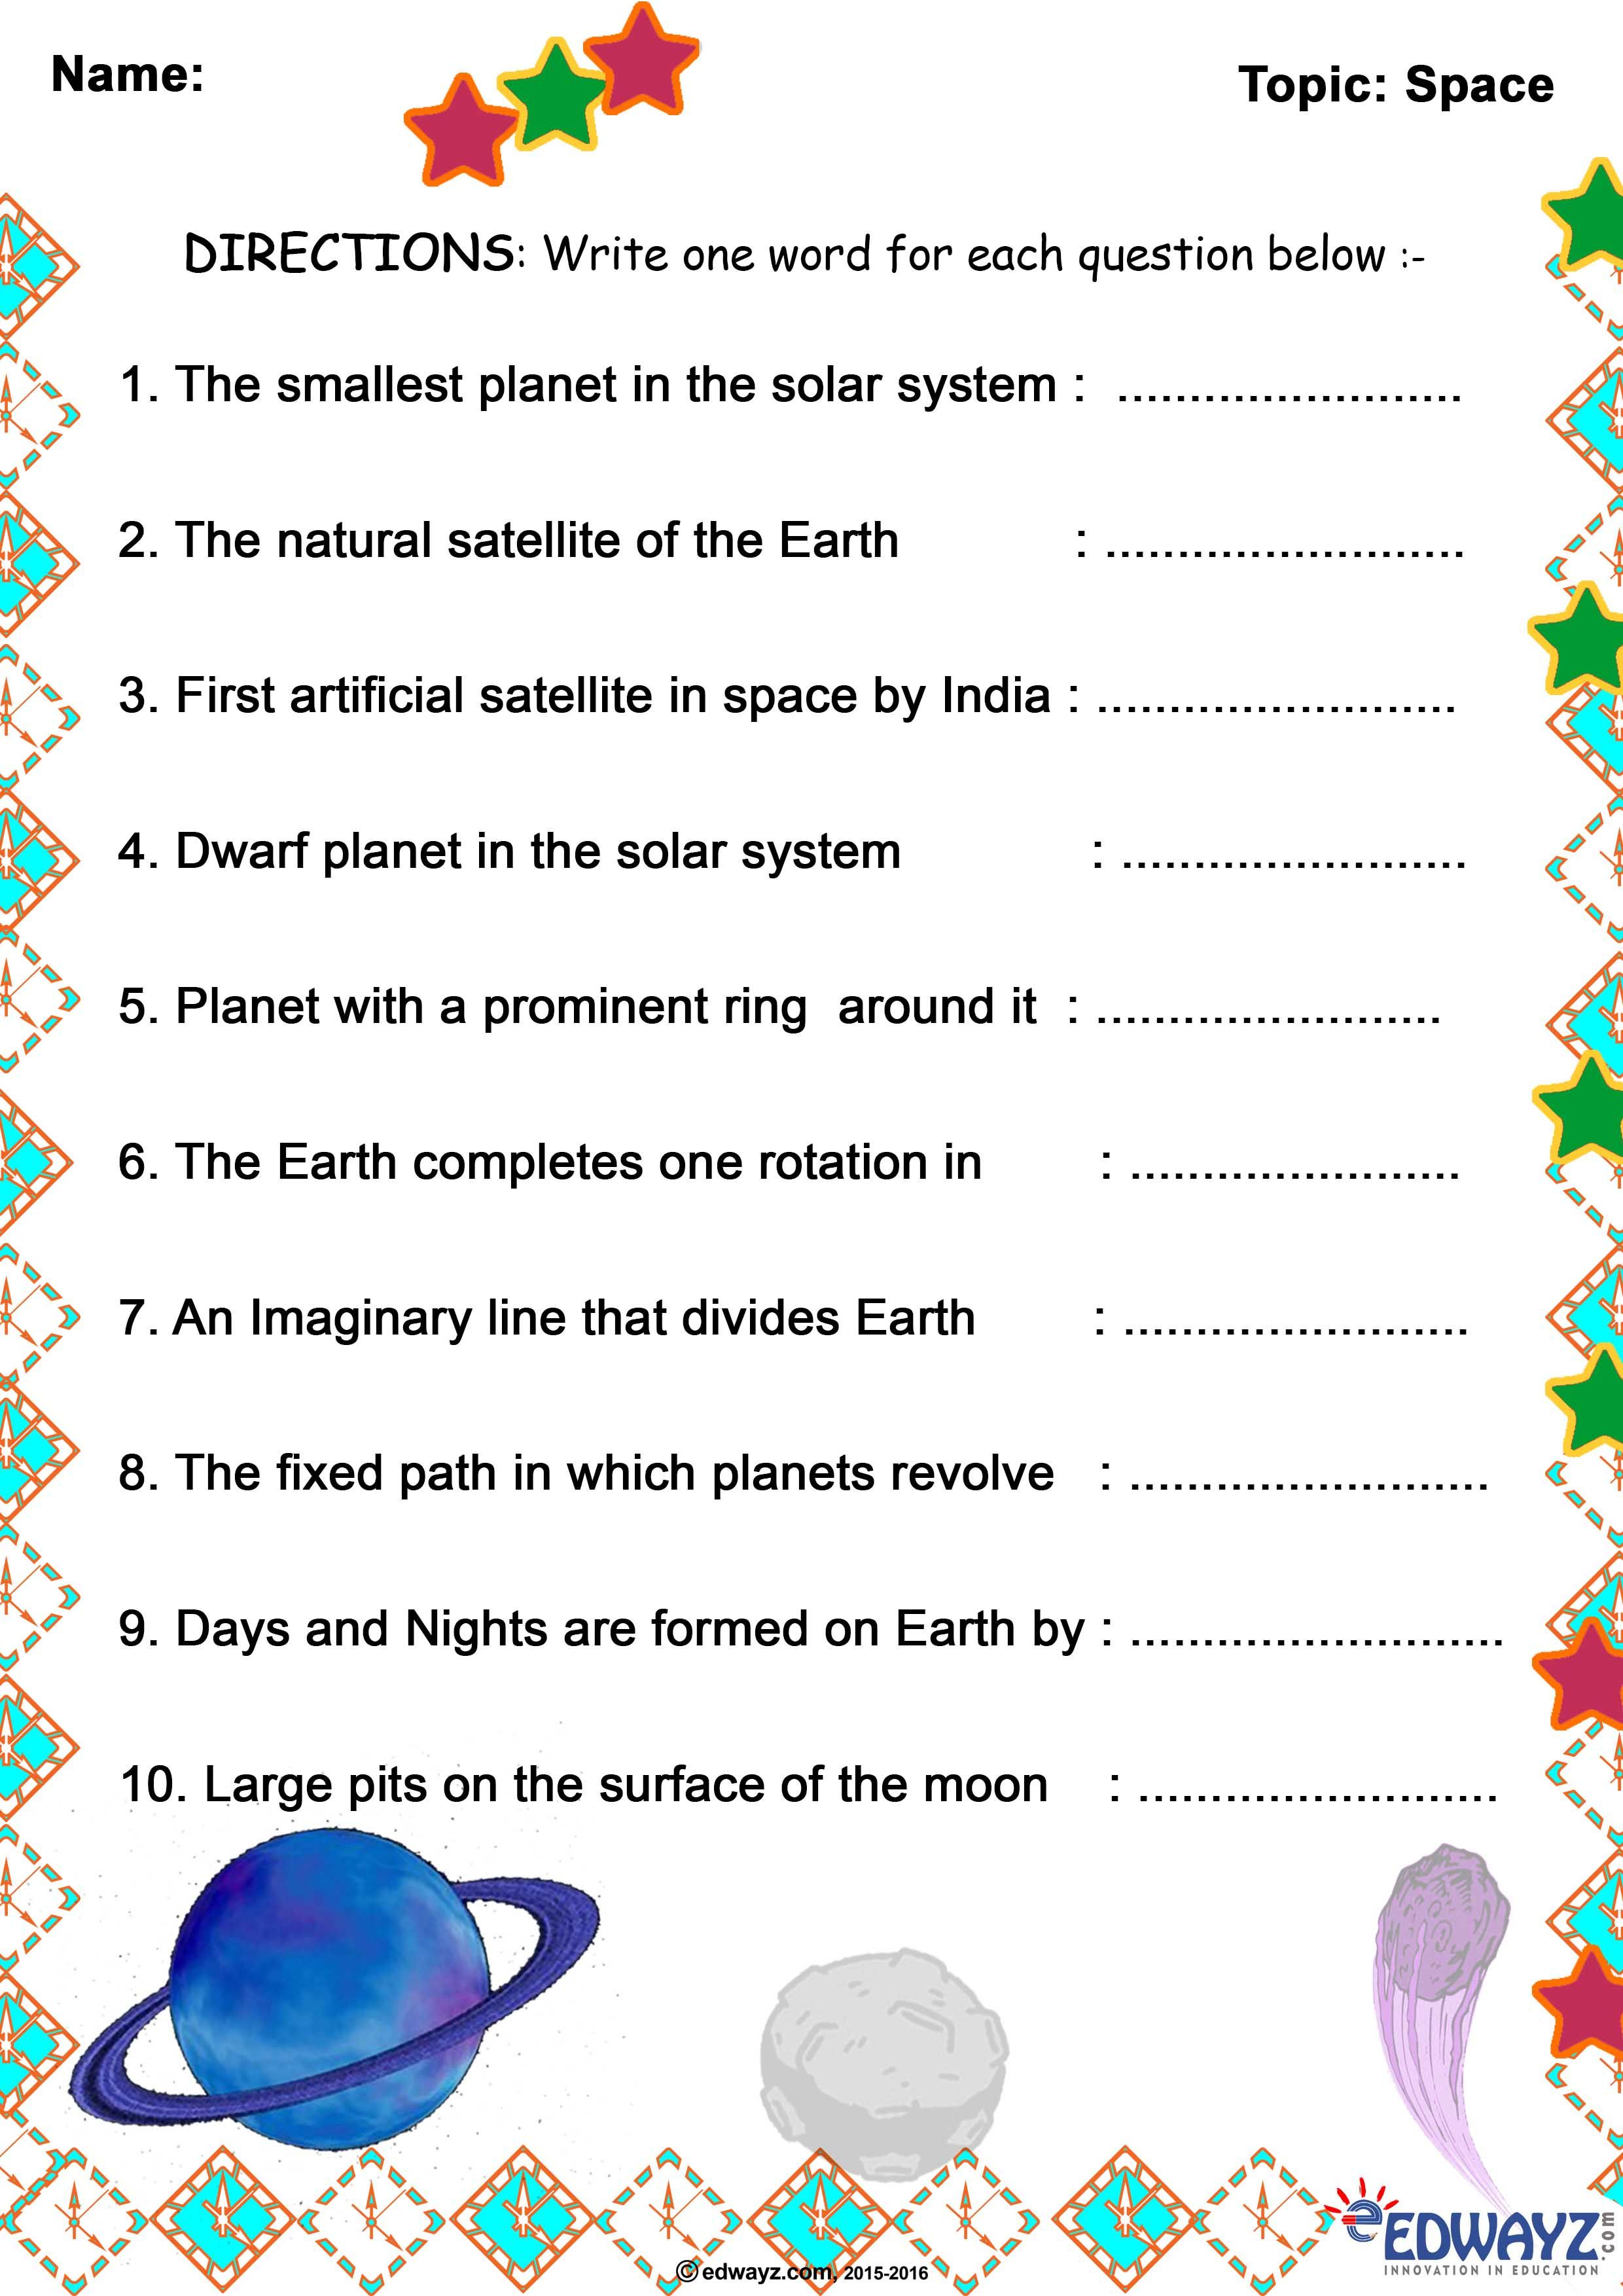 Space Edwayz Class 4 Grade 4 Evs Freeworksheets